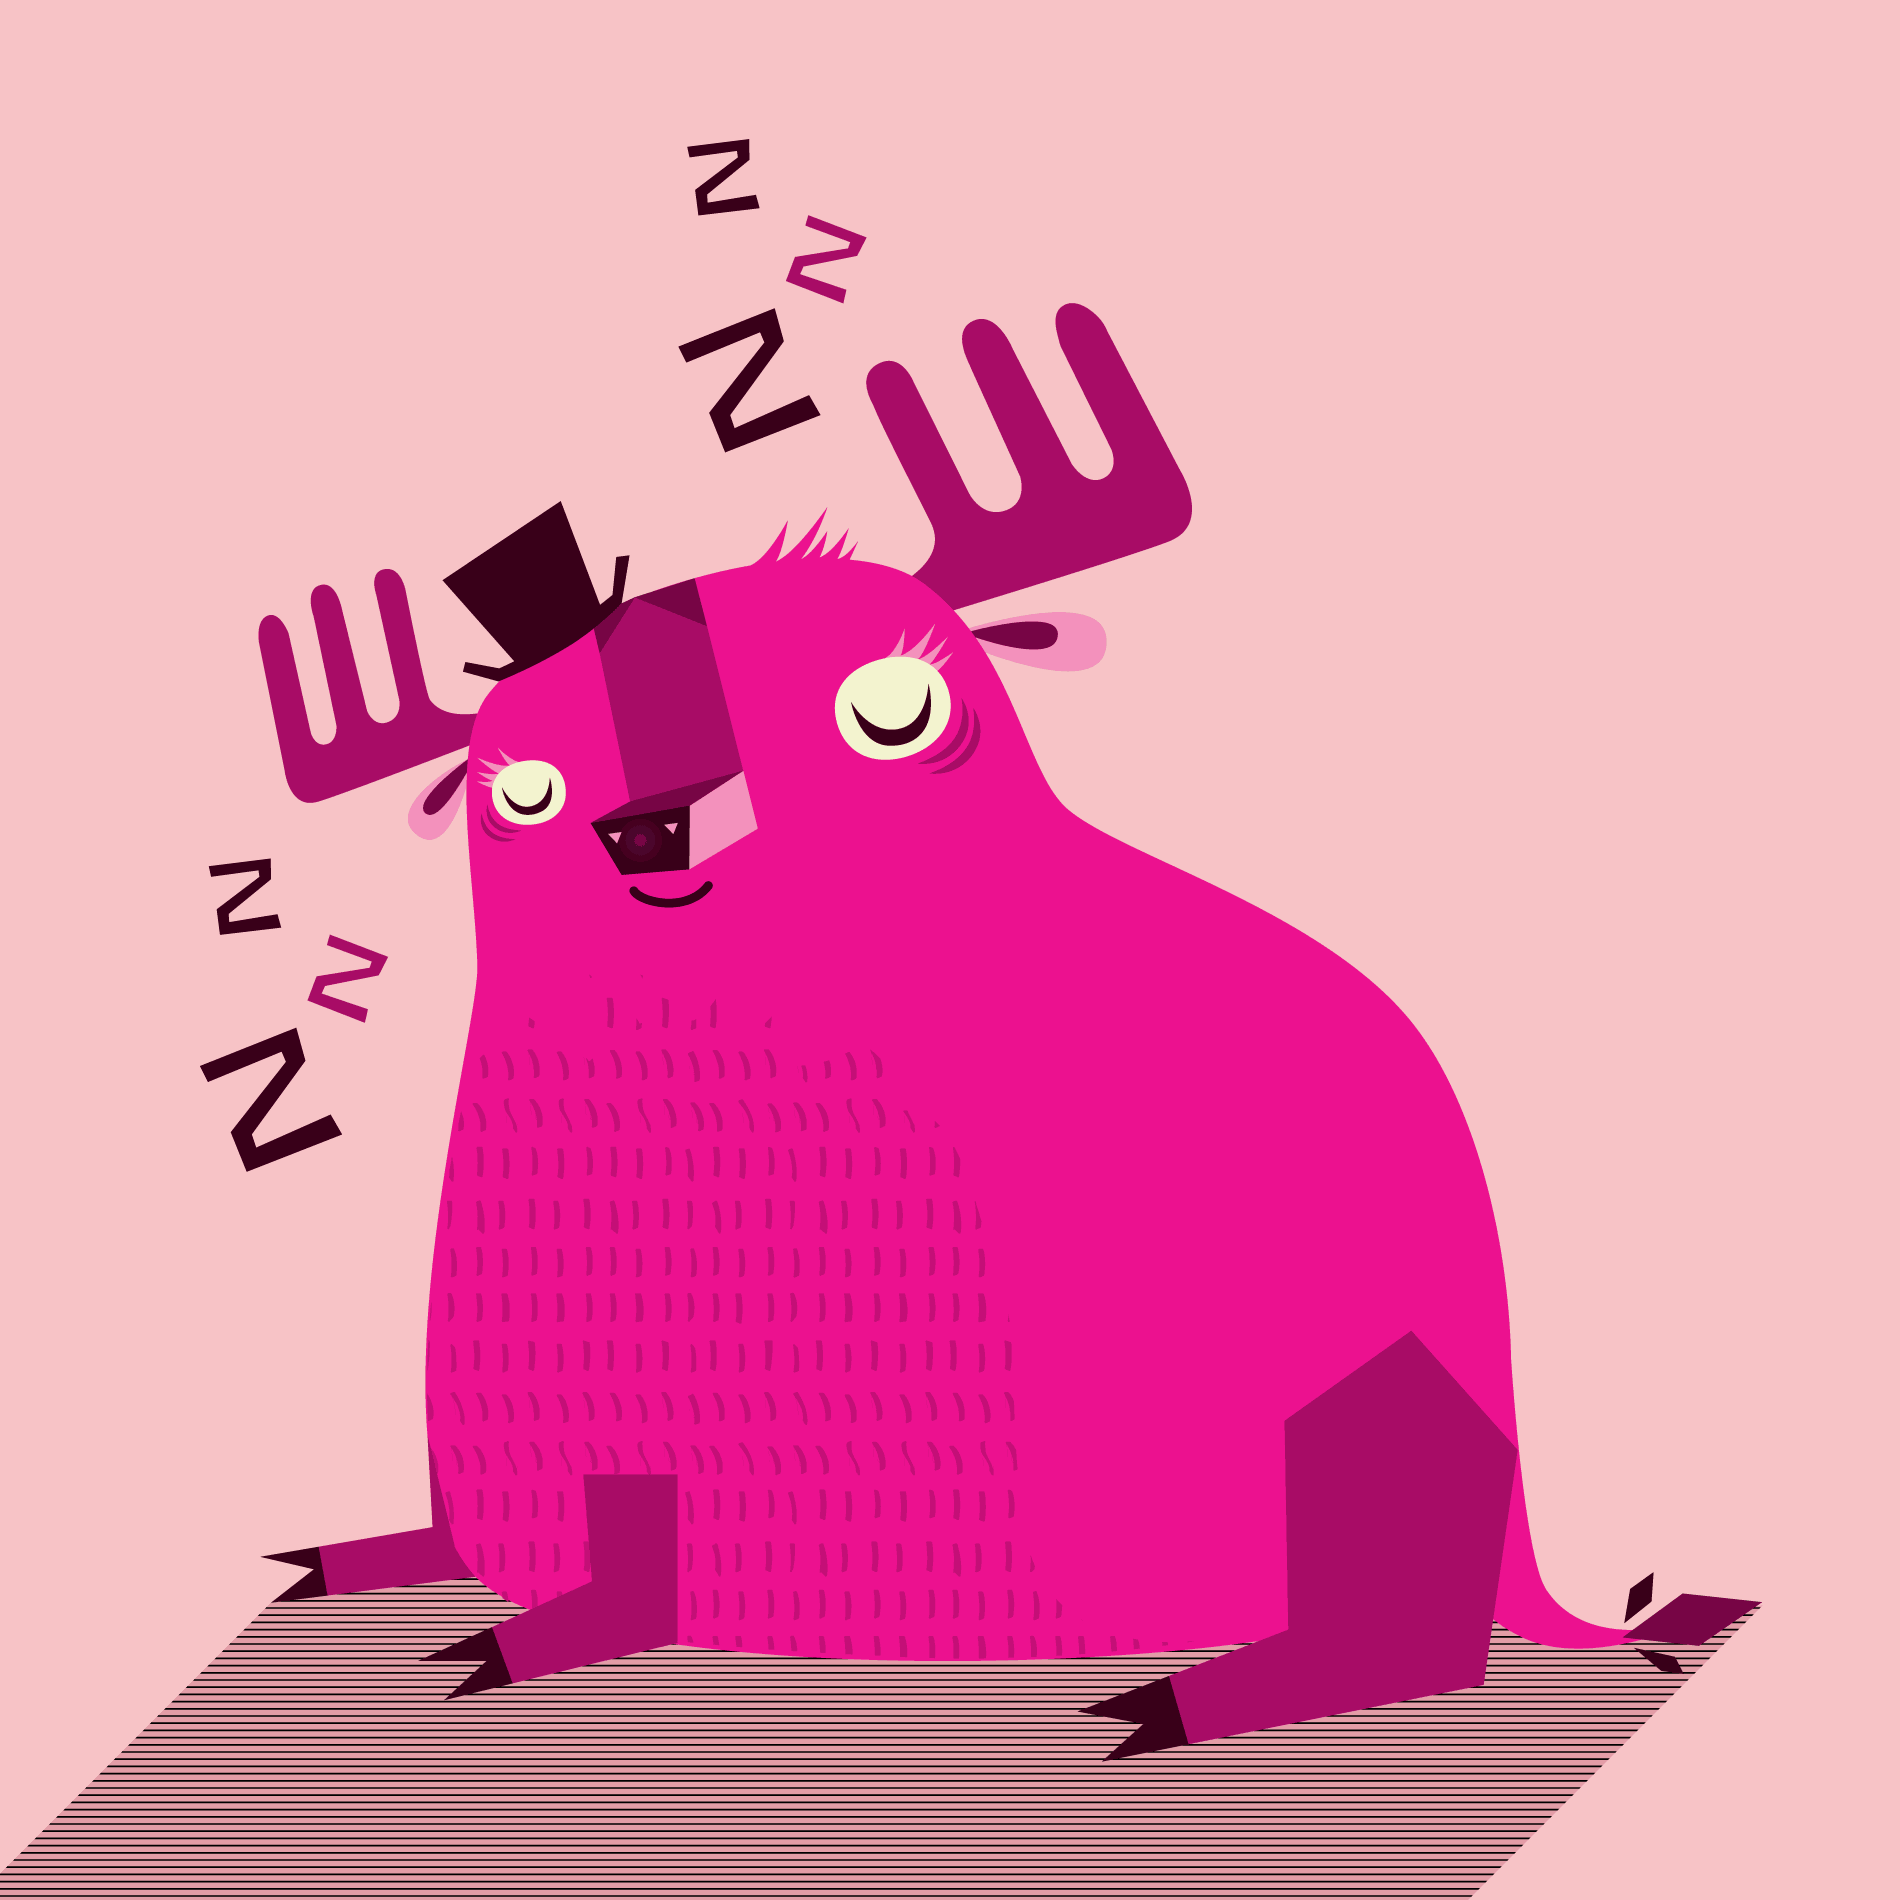 Illustration_apps_games_hackathon_moose2